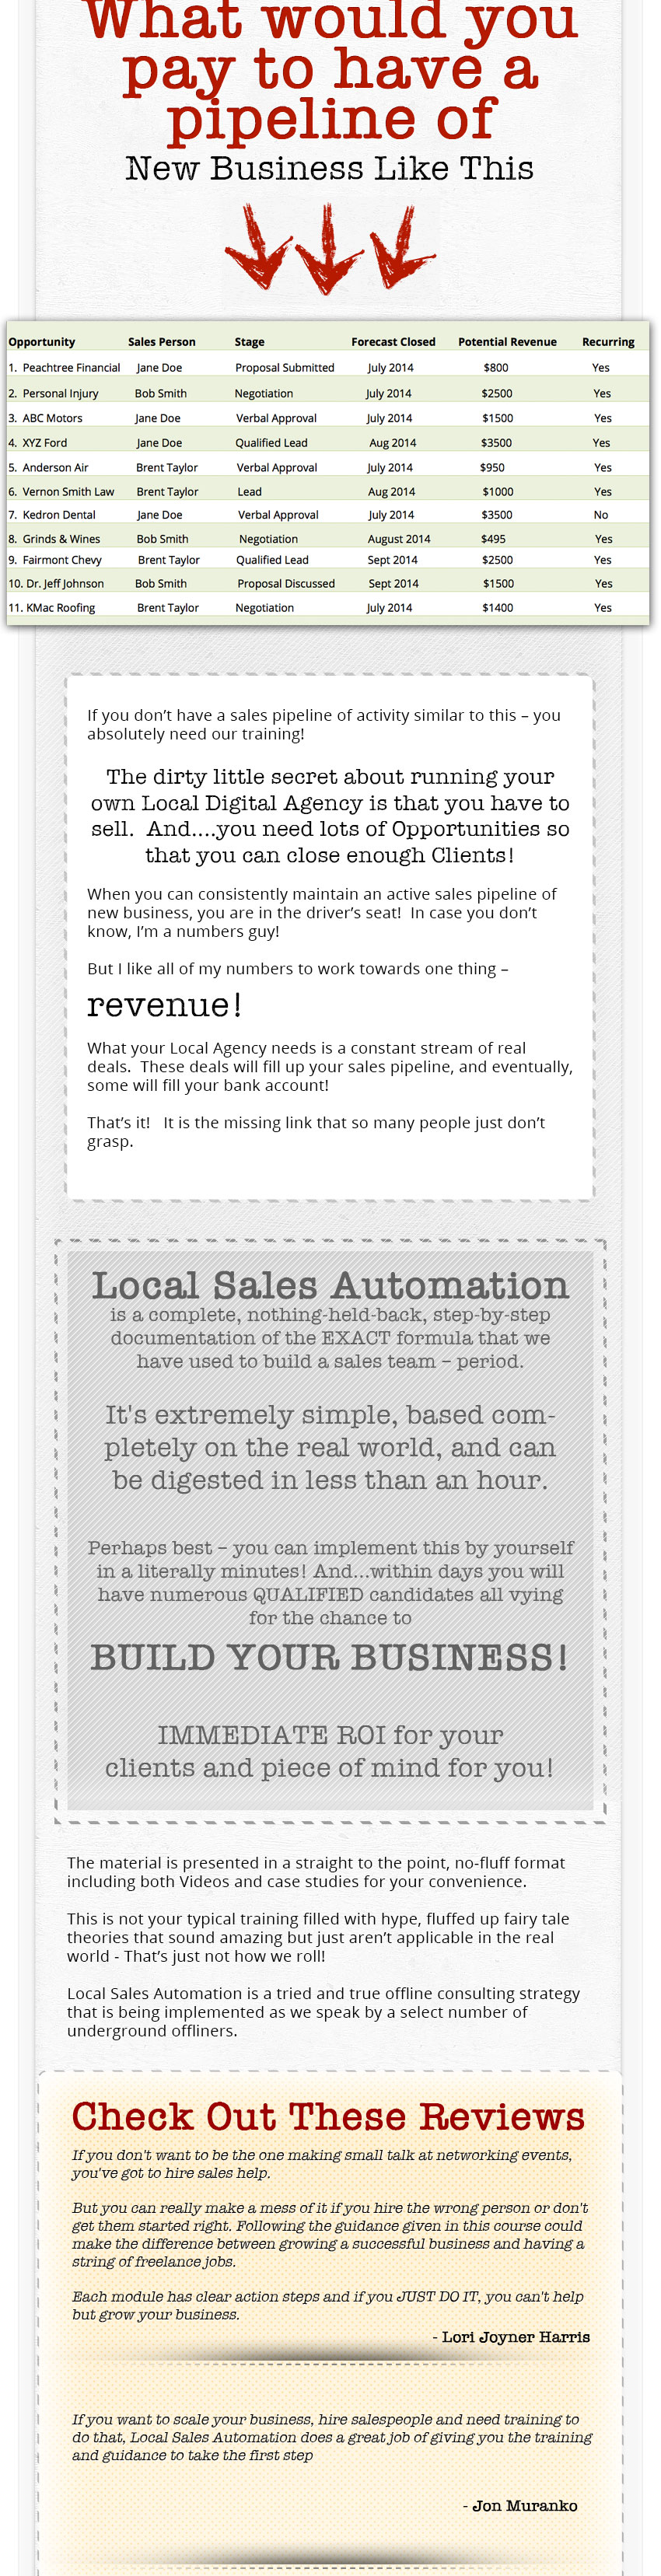 Local Sales Automation by Kevin Wilke, Ed Downes, Brian Anderson WSO_04